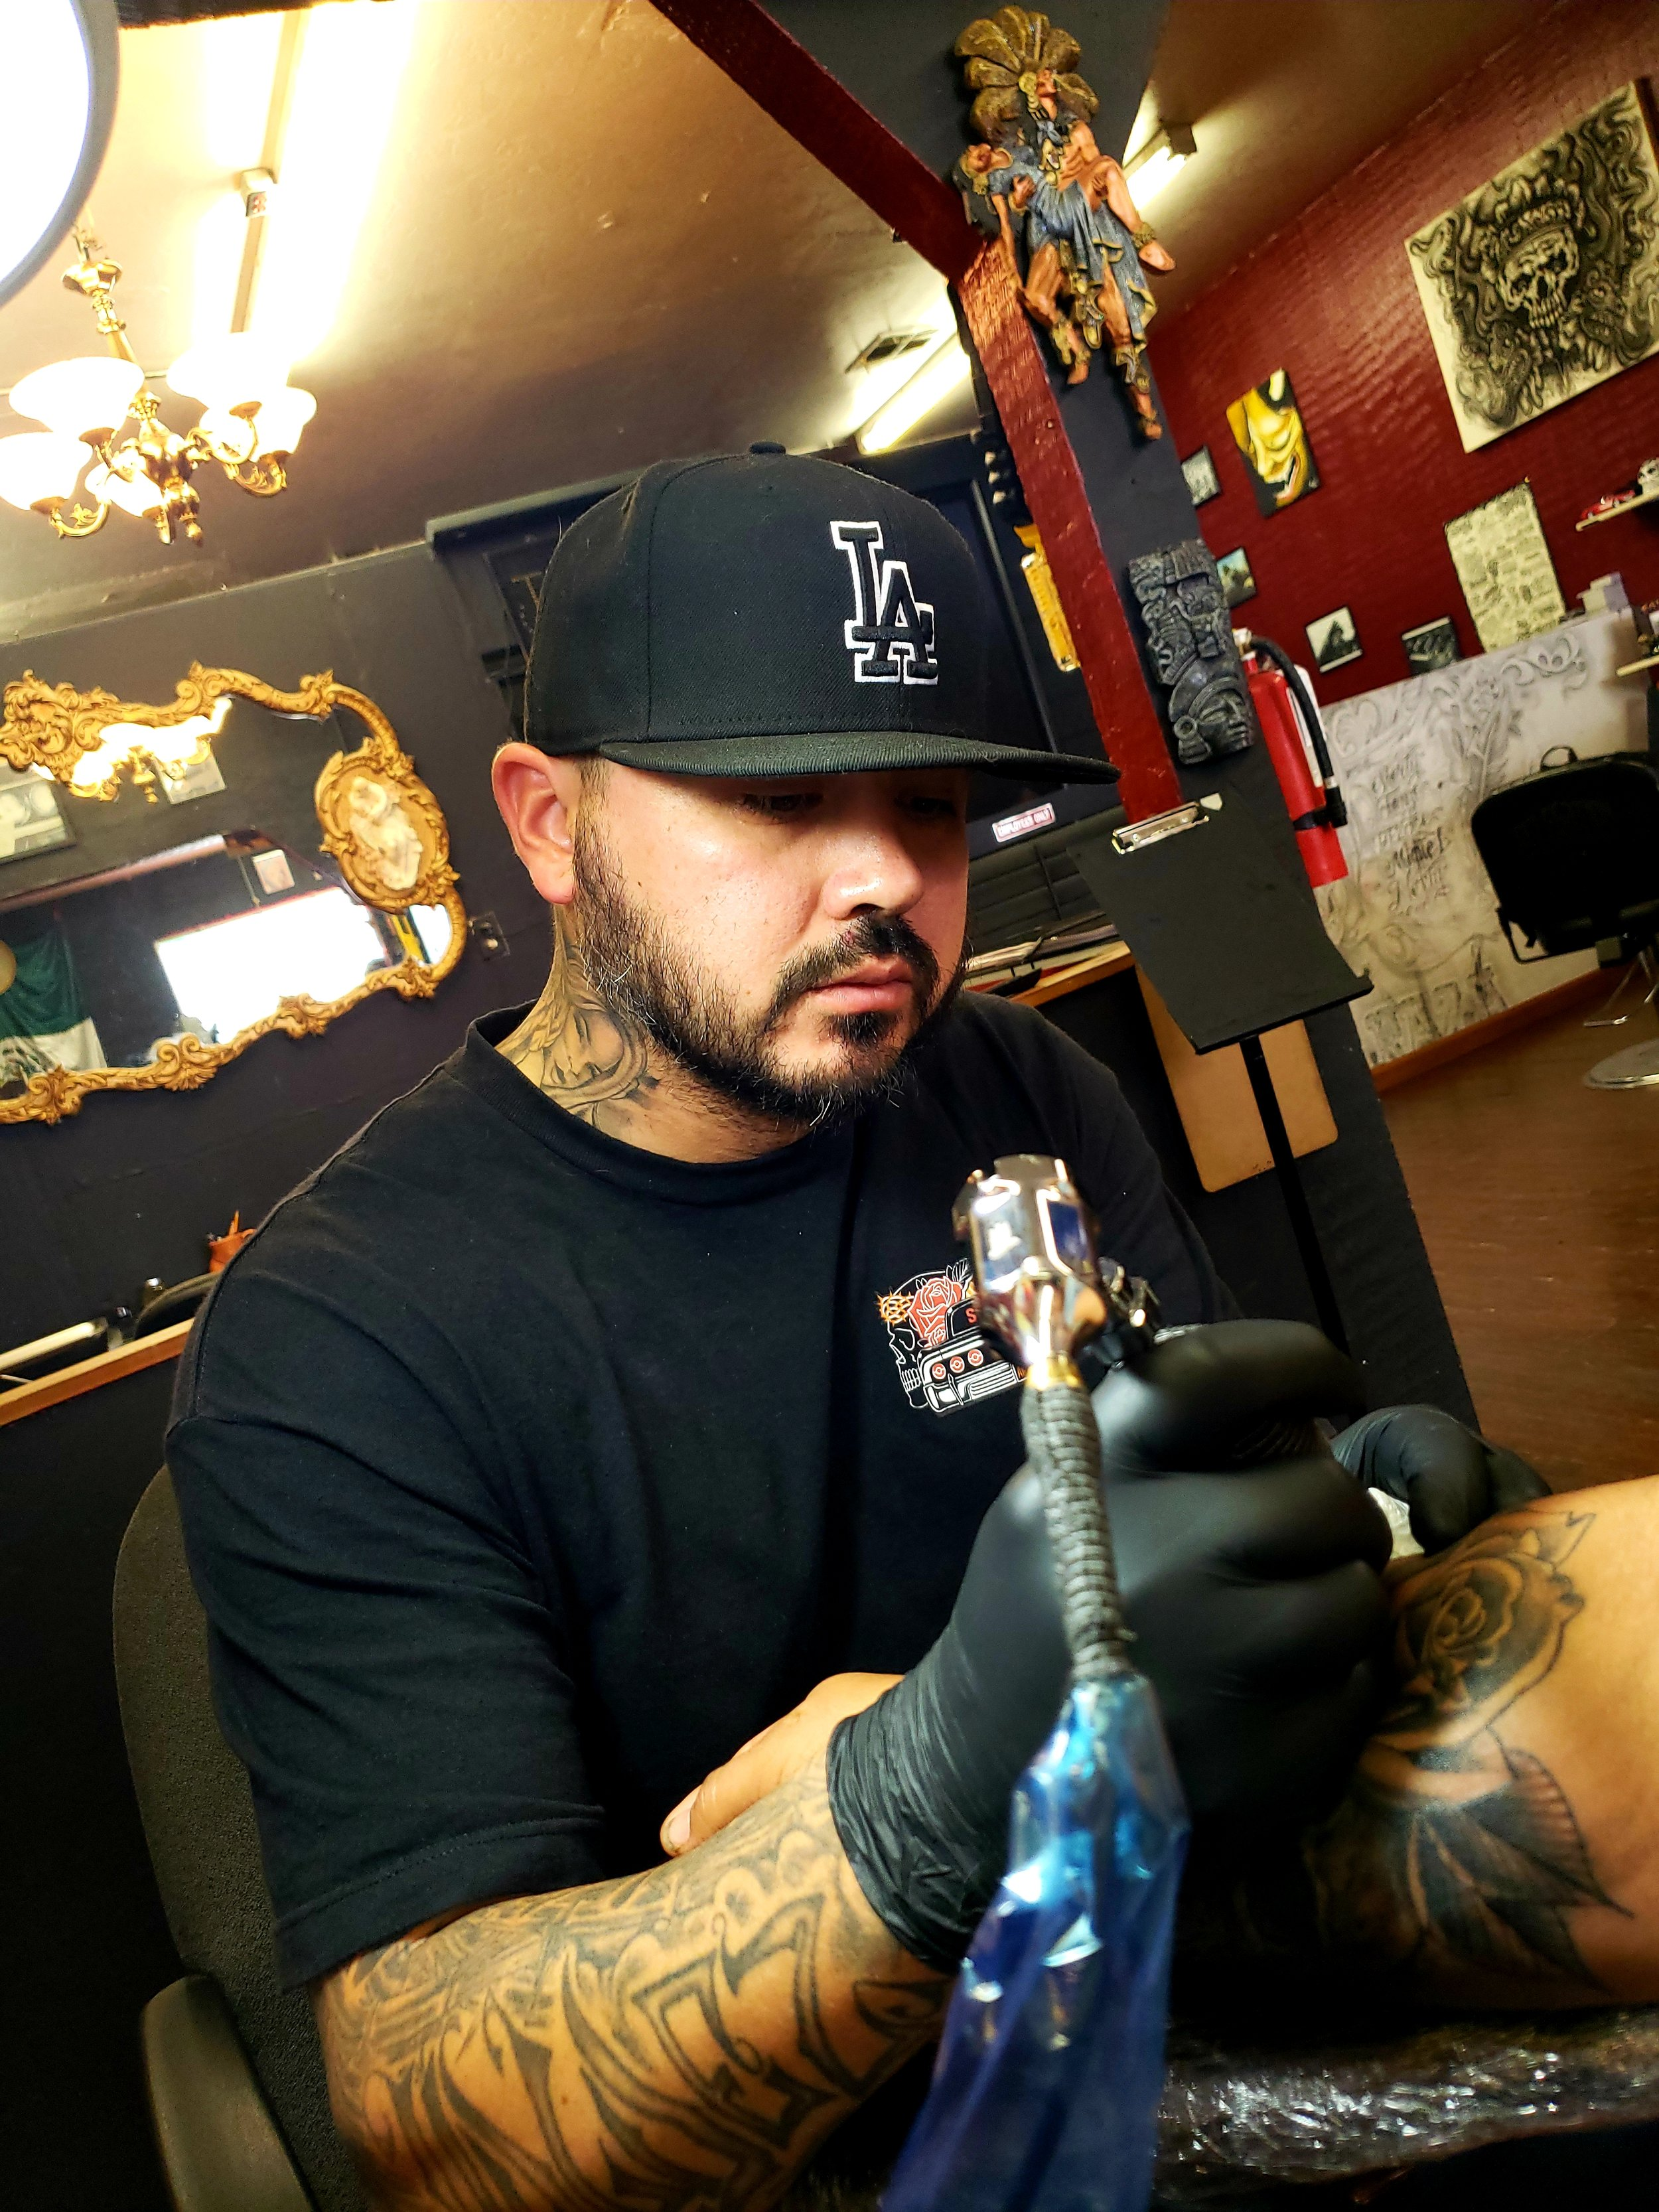 Mario Valdez - Mario was born and raised in the LA area and ended up settling down in the Central Valley. Art has always been a passion for him. After working a 9-5 for years, Mario got inspired by Bob Tyrell to pursue a career in tattooing. Since then he established himself in Tulare, CA at La Raza Tattoo. Specializing in fine line black and gray, cover ups and script. Click his picture to check out his work.